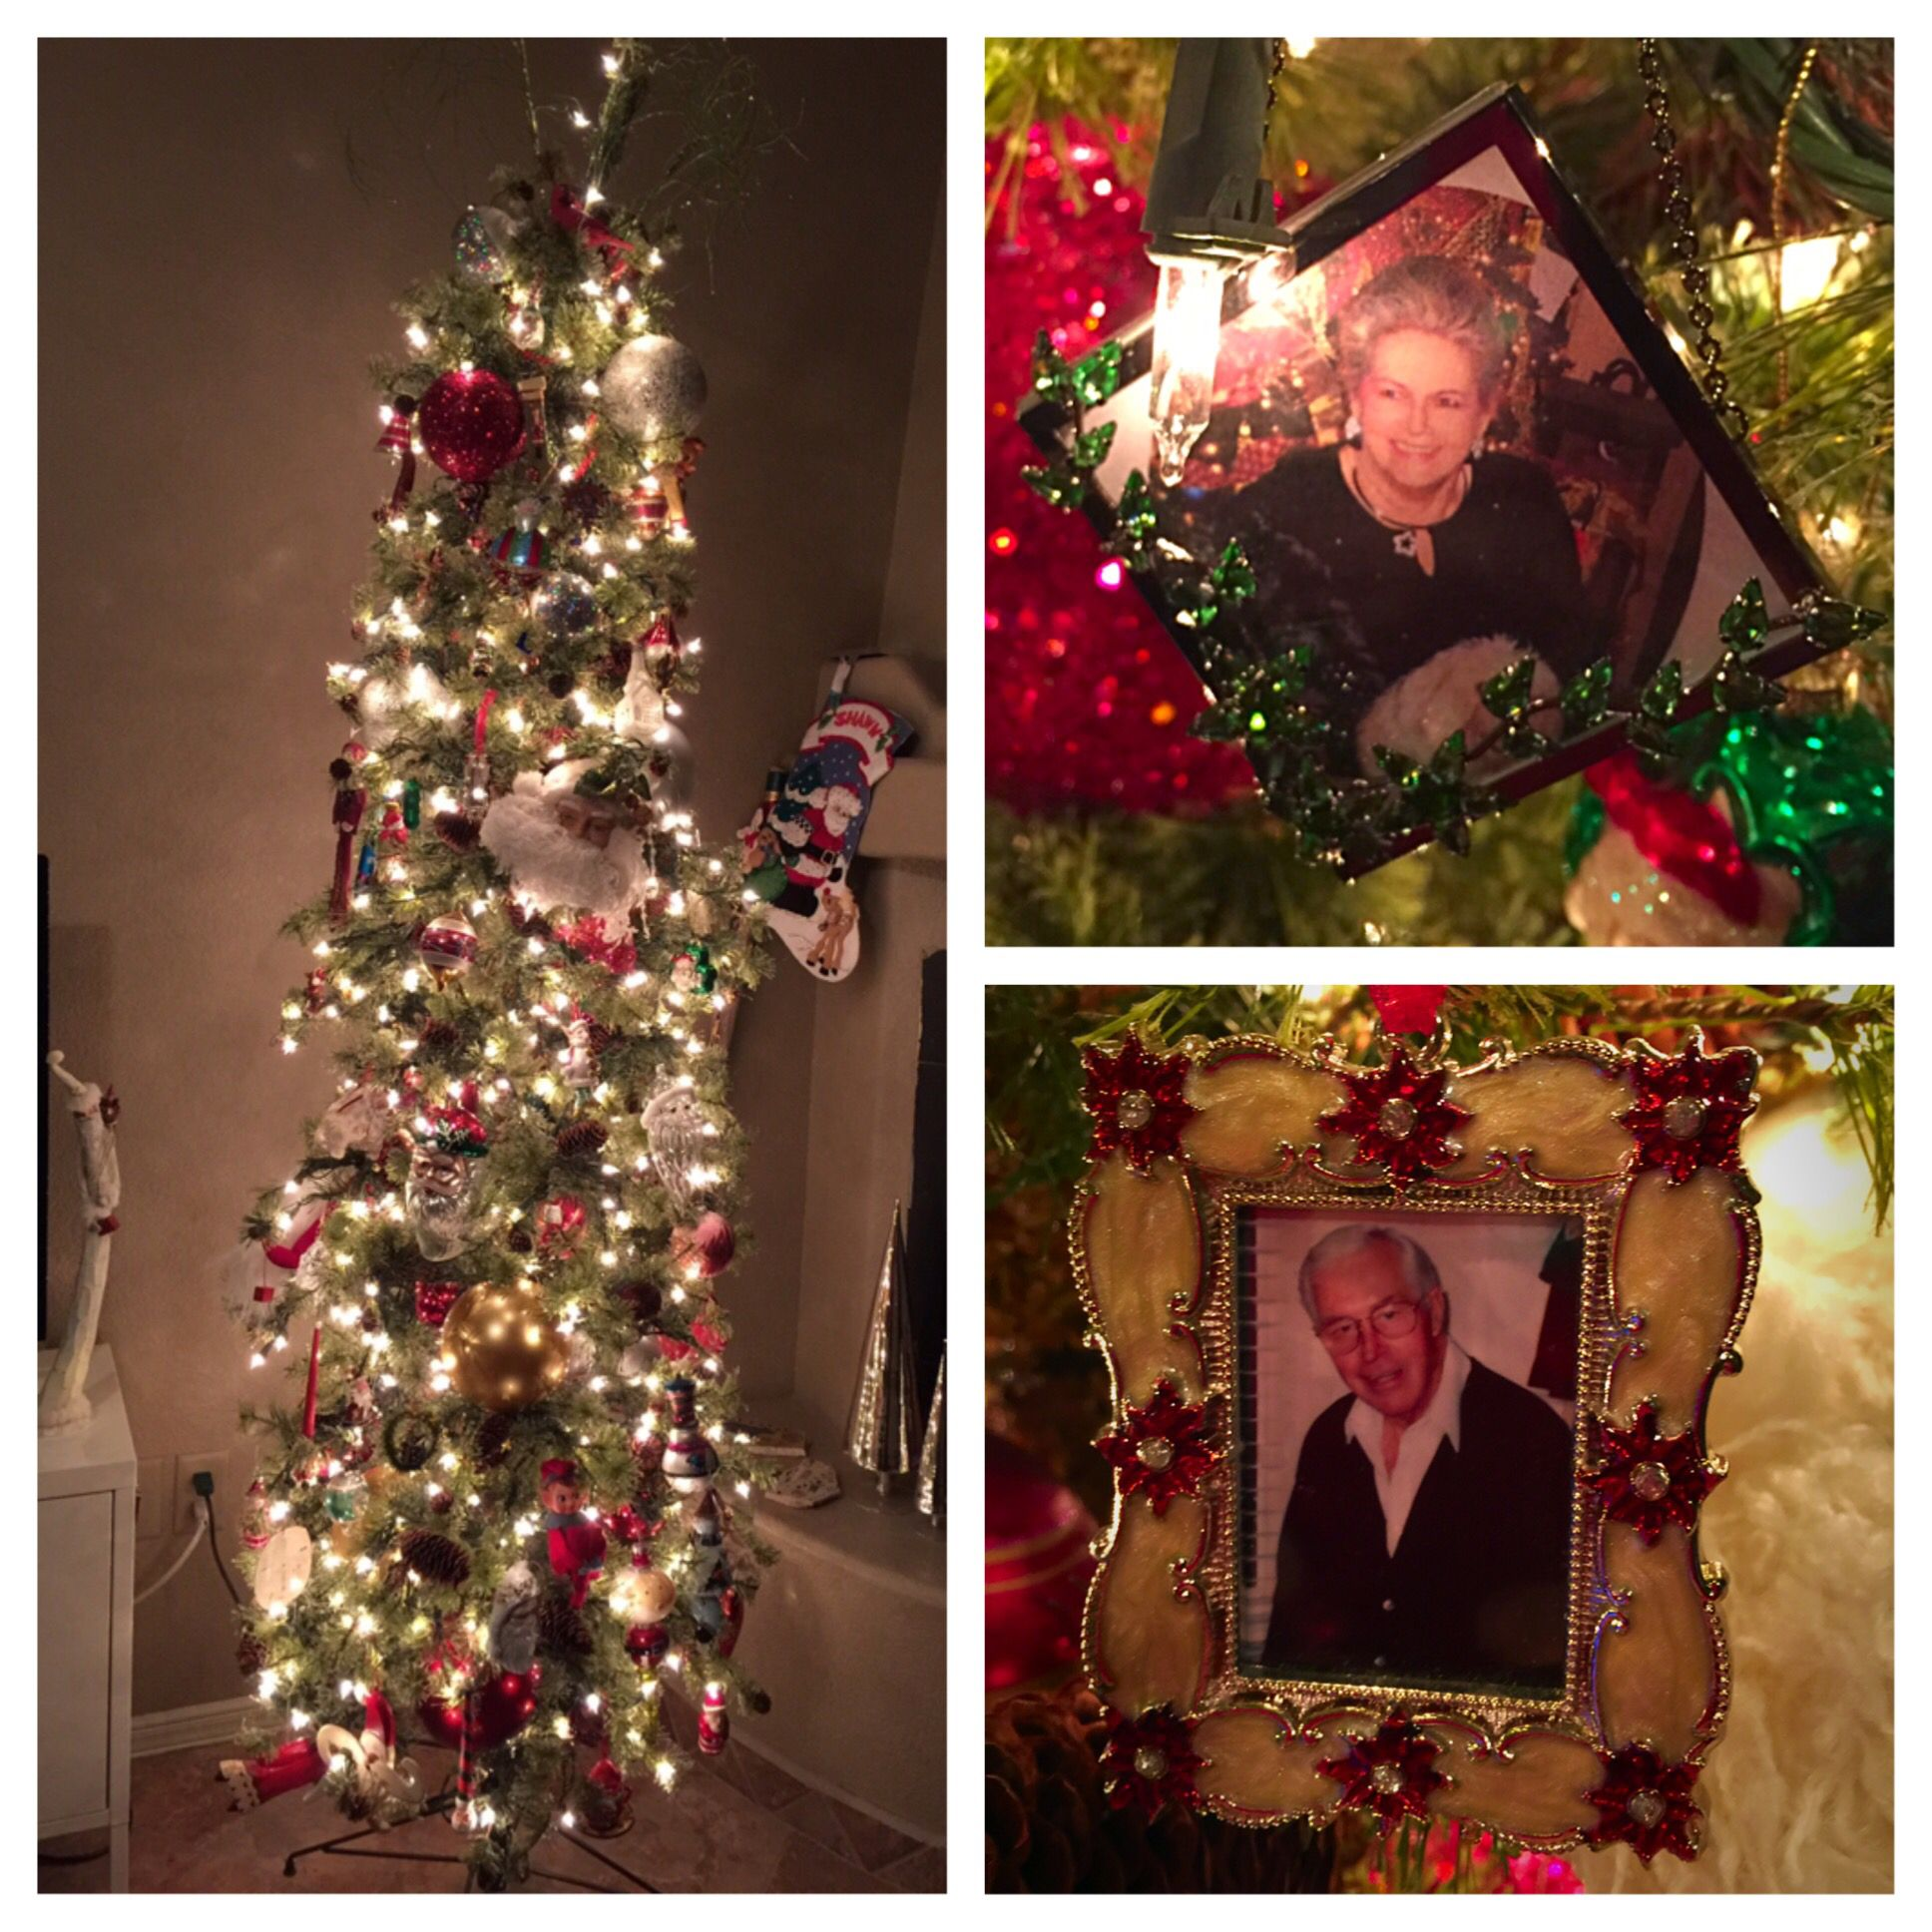 My parents always remain with me in spirit. Also with me at Christmas.